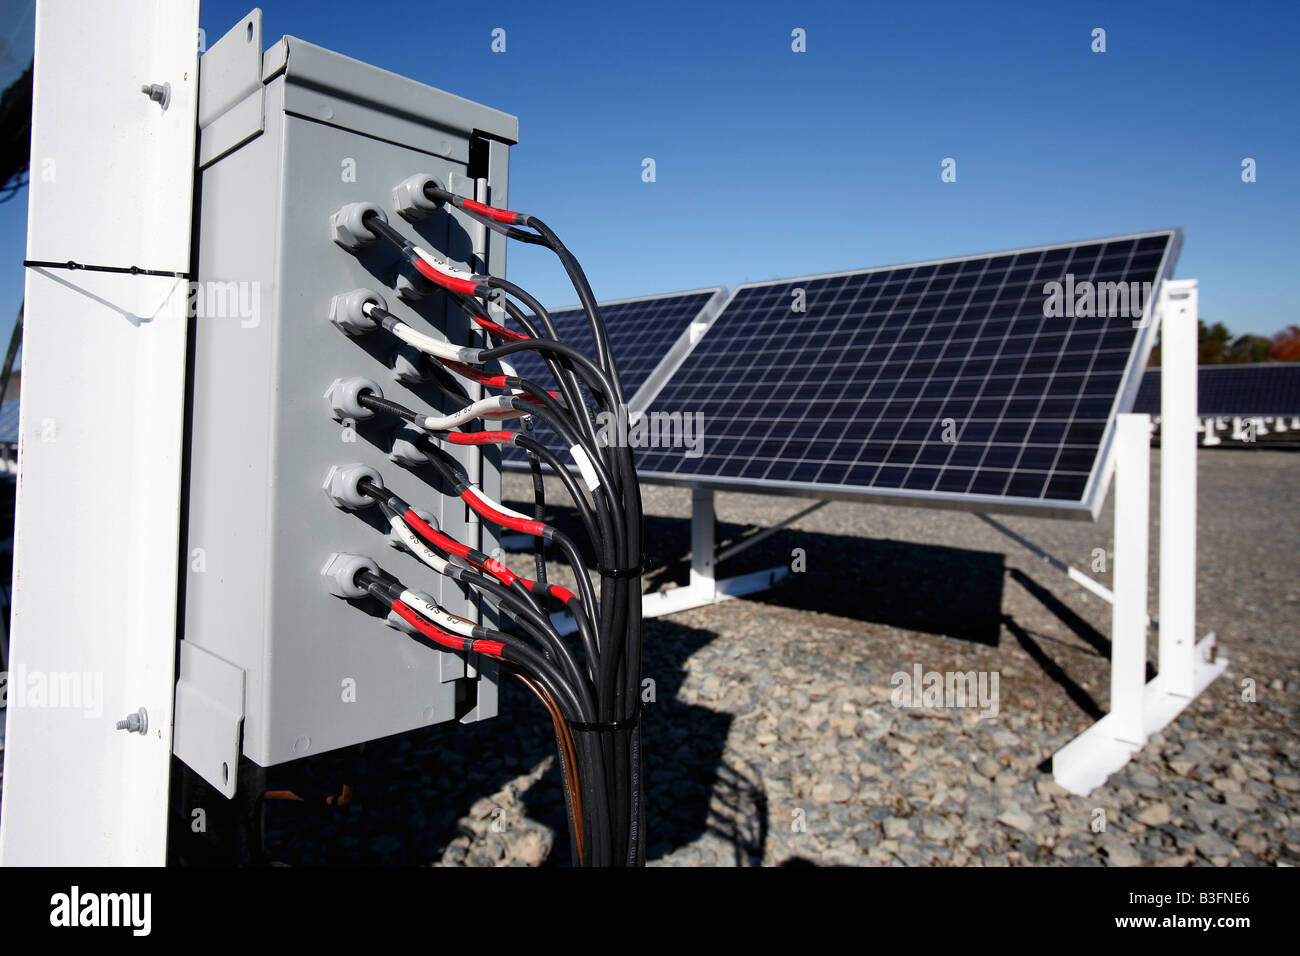 electrical wires enter a junction box on the site of a solar powered B3FNE6 electrical junction box with wires stock photo, royalty free image Pull Box at edmiracle.co